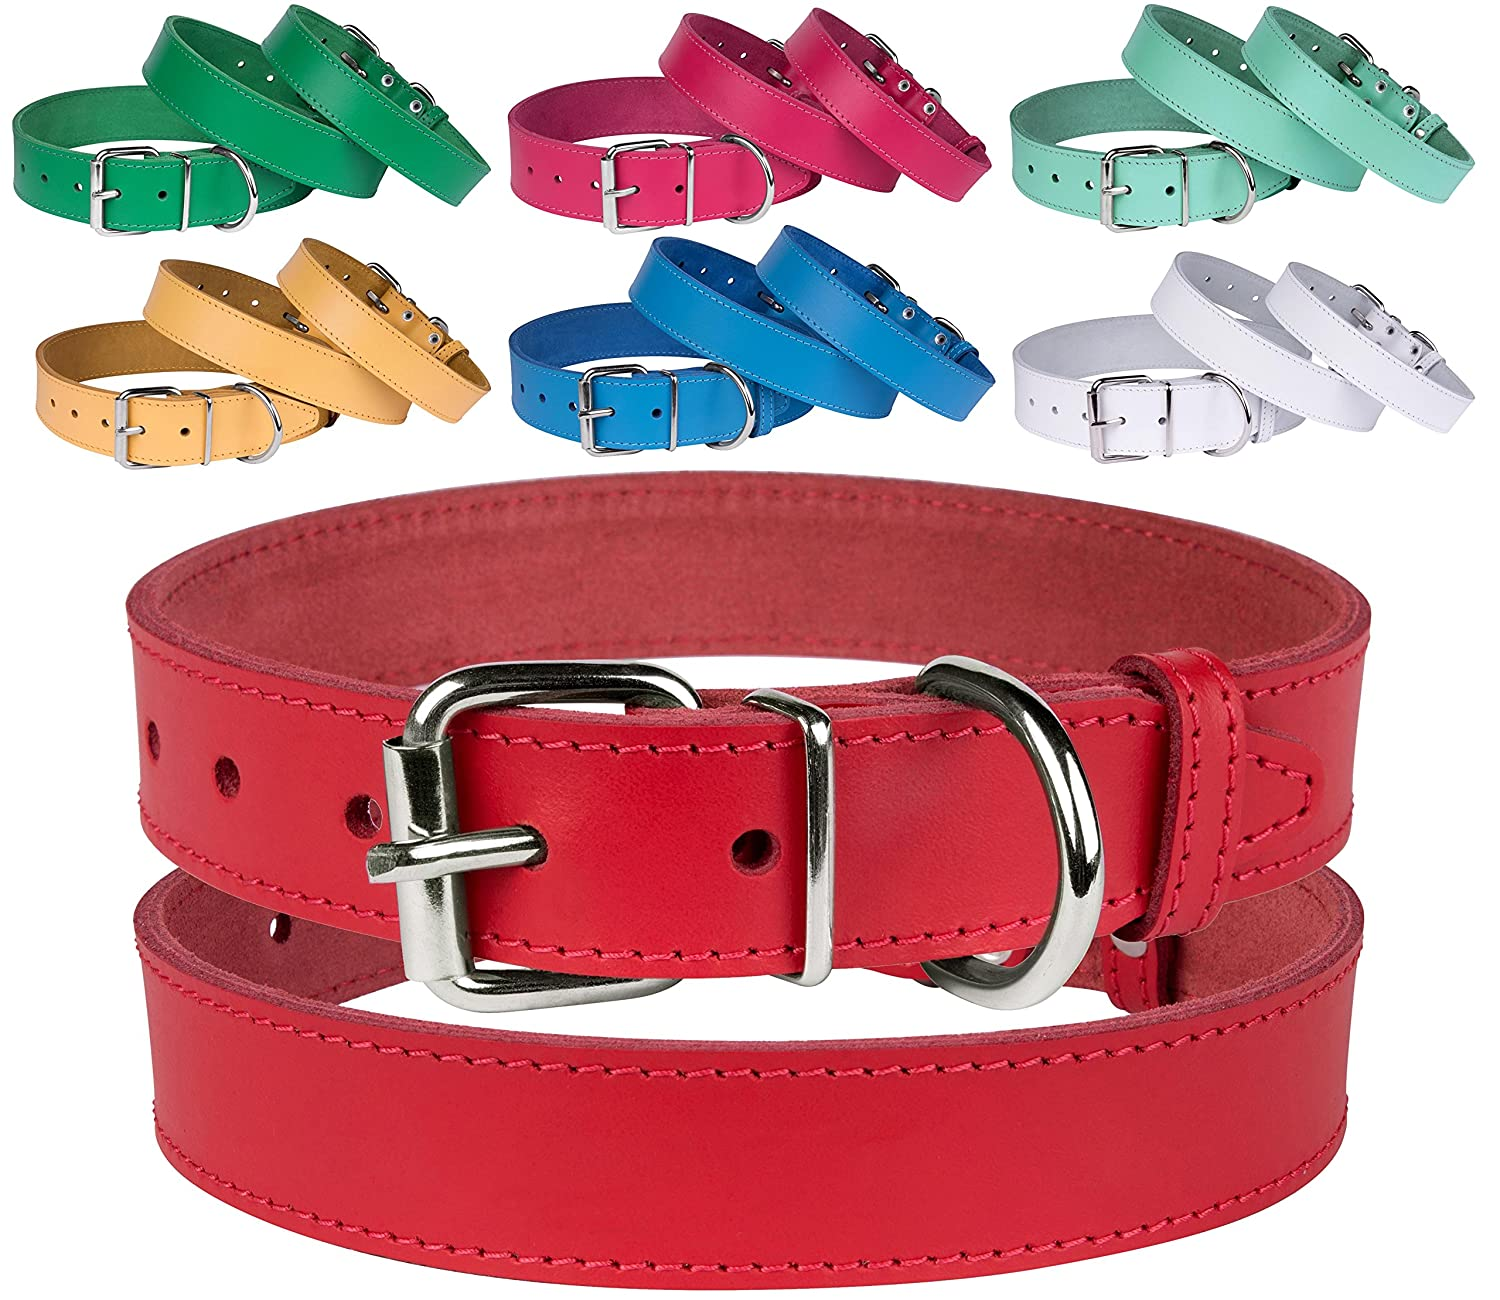 Red Neck Size 7\ Red Neck Size 7\ BronzeDog Genuine Leather Dog Collar Puppy Pet Collar for Dogs Small Medium Large Pink Red bluee Green Turquoise White Yellow (Neck Size 7  9 , Red)